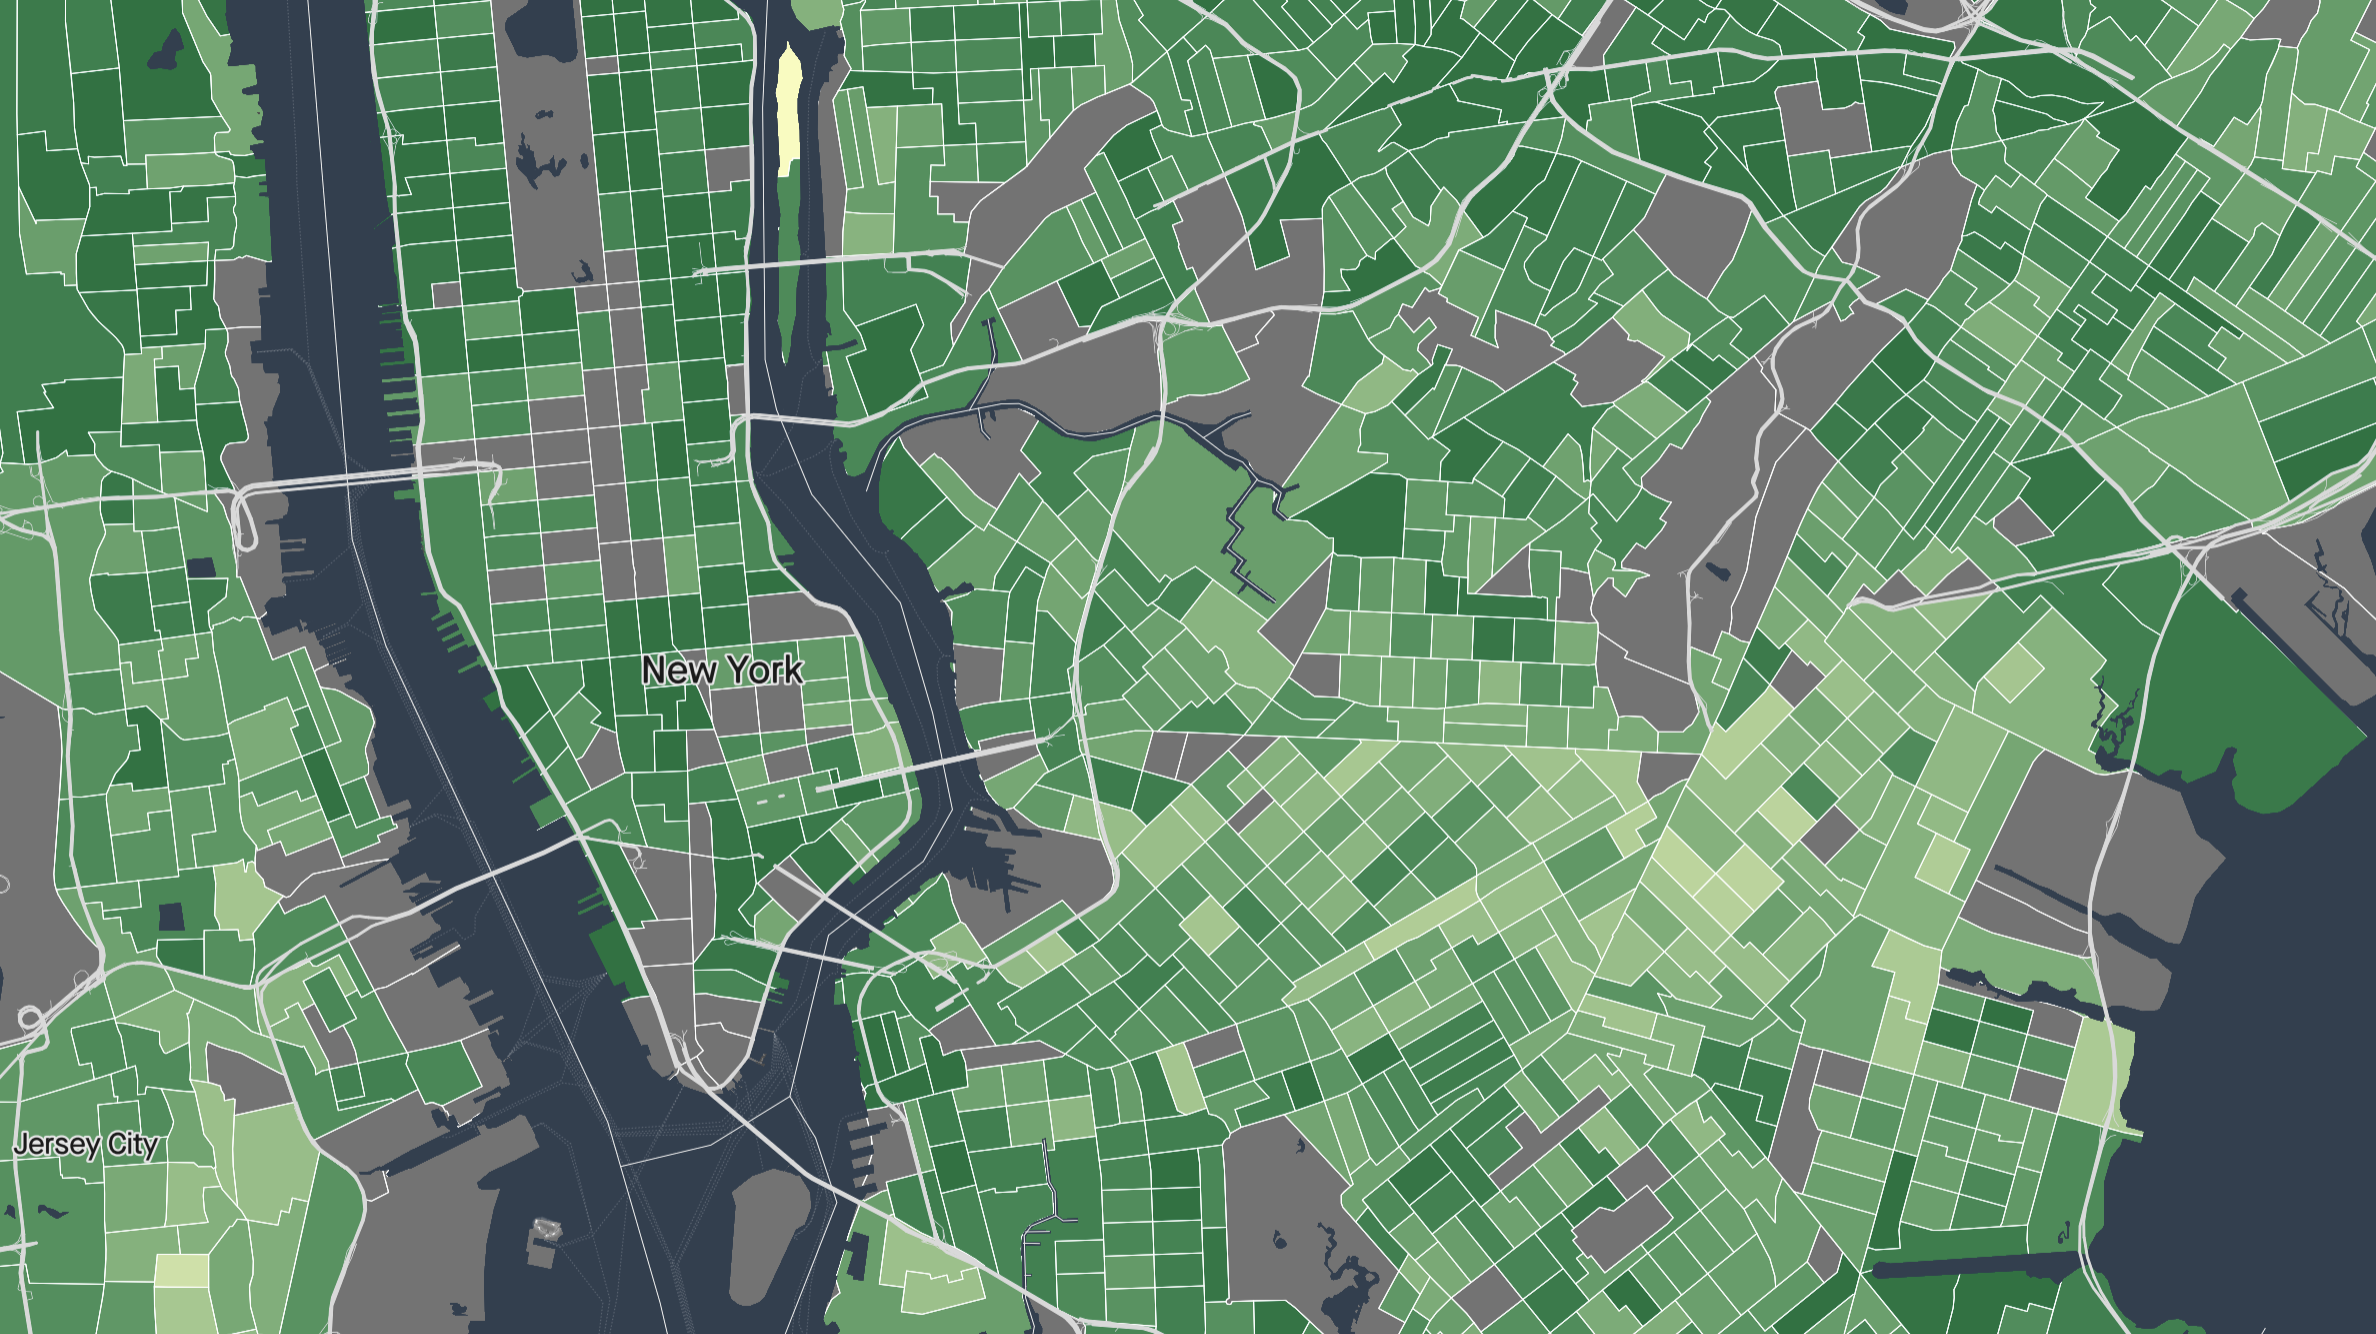 Life expectancy in the United States, mapped by neighborhood